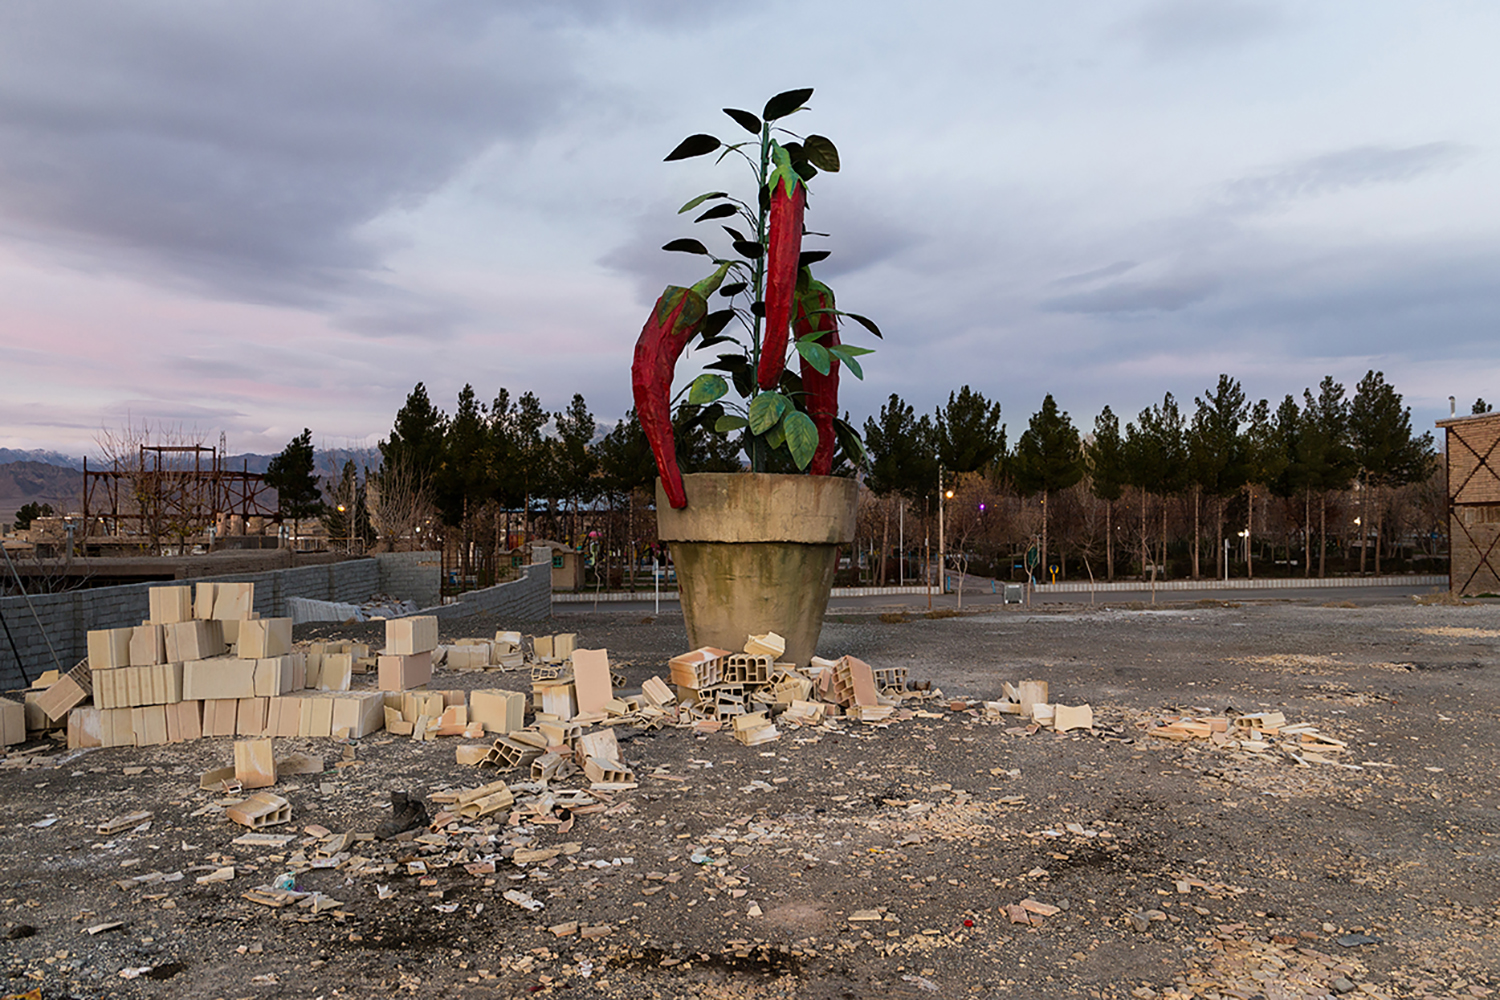 The sculpture of pot and its red chilly, abandoned in Davarzan city's St., Iran.